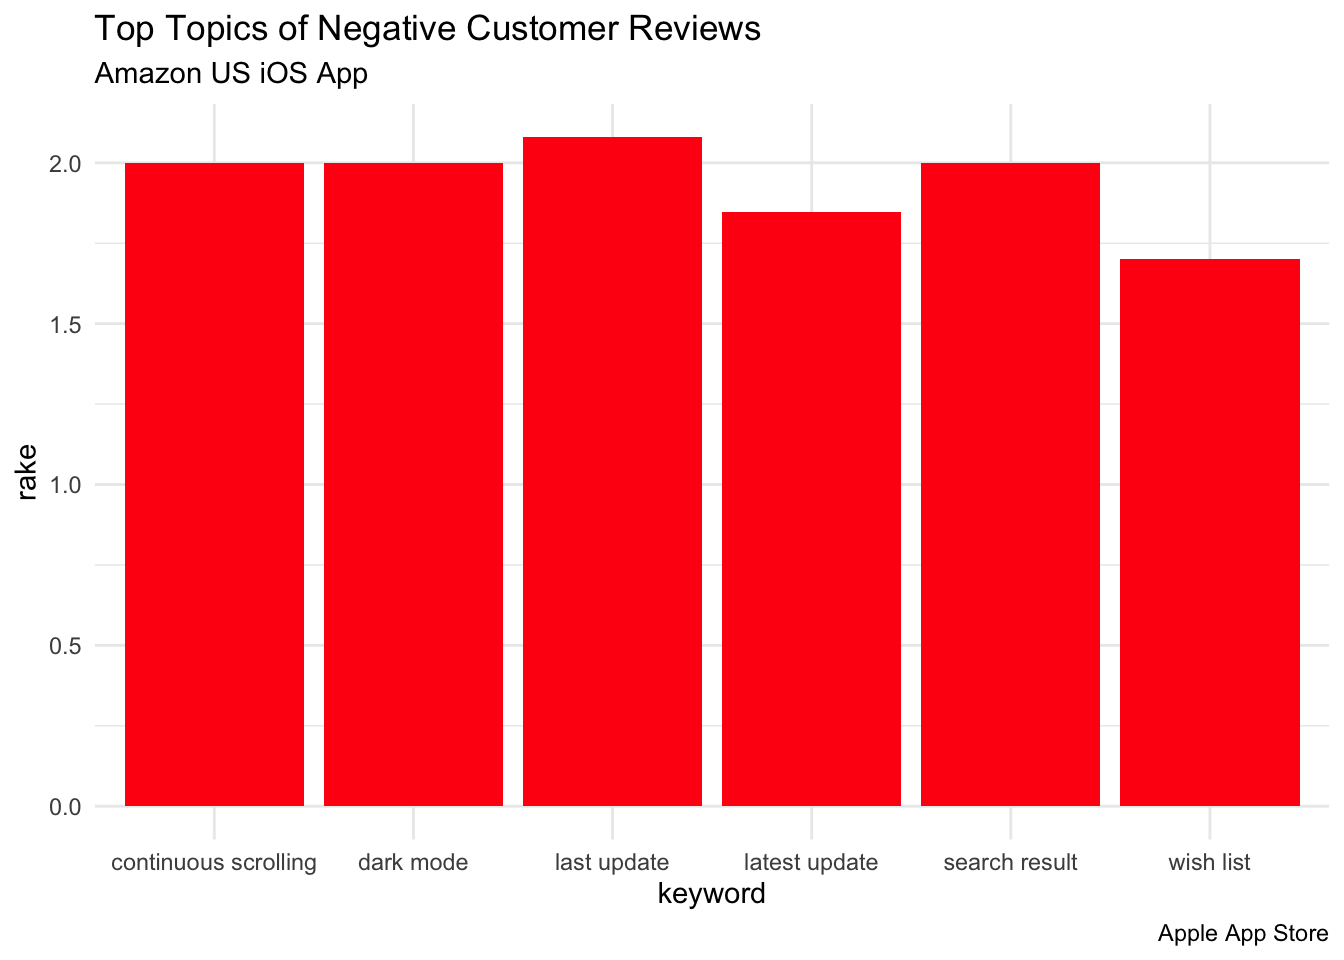 How to do Topic Extraction from Customer Reviews in R